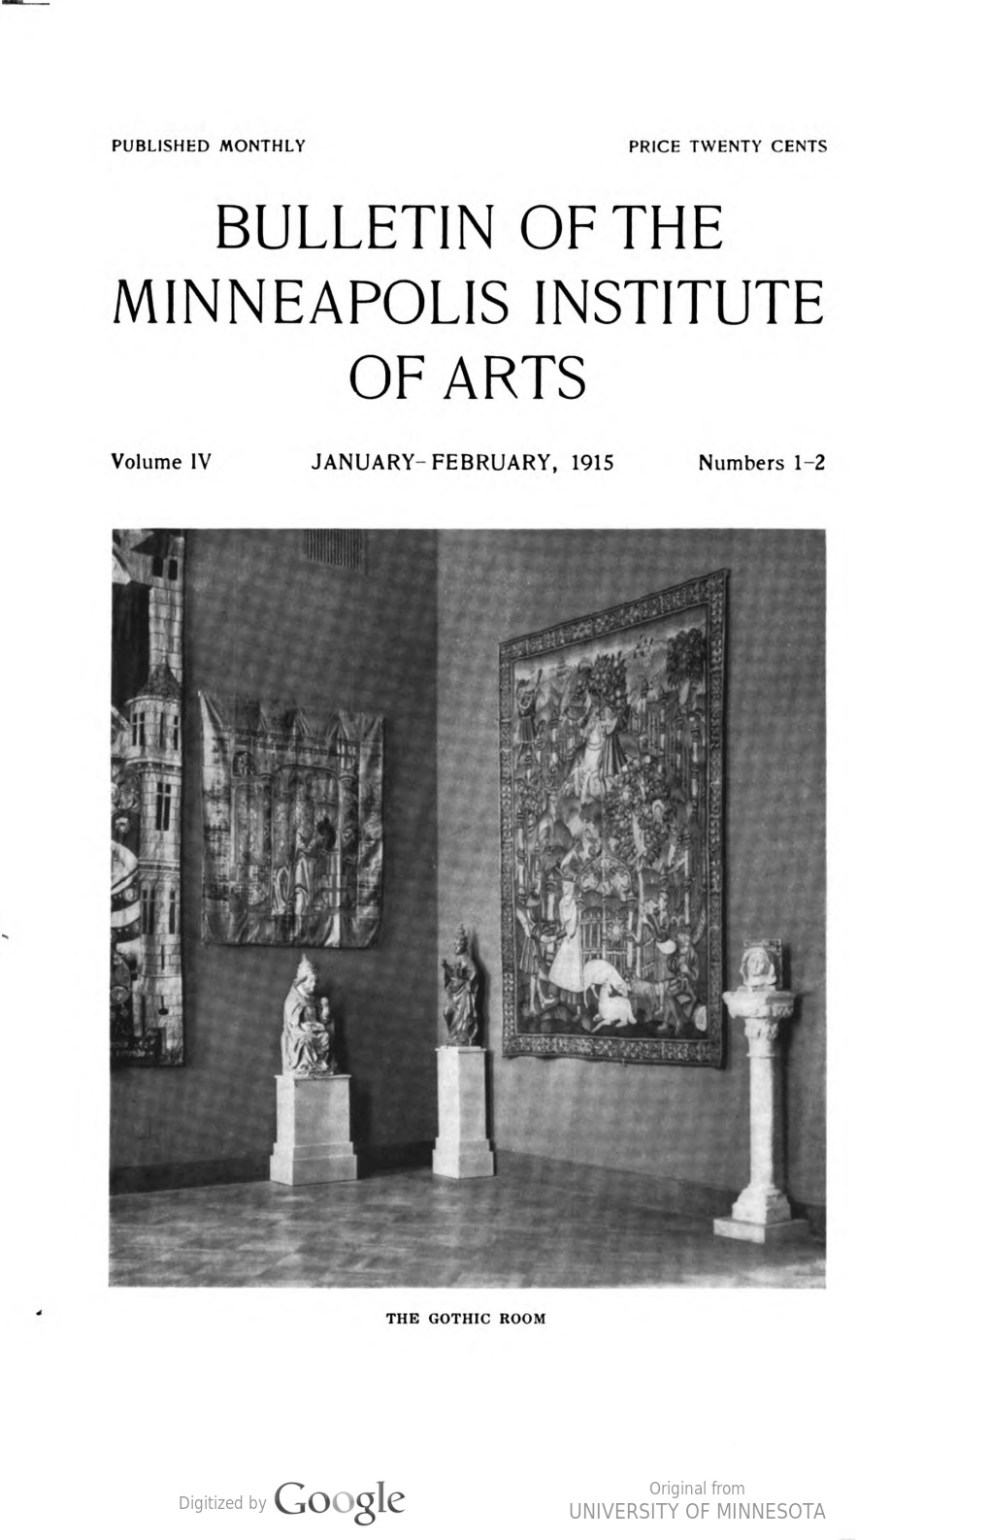 """Bulletin of the Minneapolis Institute of Arts, The Minneapolis Institute of Arts, Minneapolis, MN, """"List of accessions : July, 1914 - January, 1915"""", January - February, 1915, volume 4, number 1-2, page 23, not illustrated"""